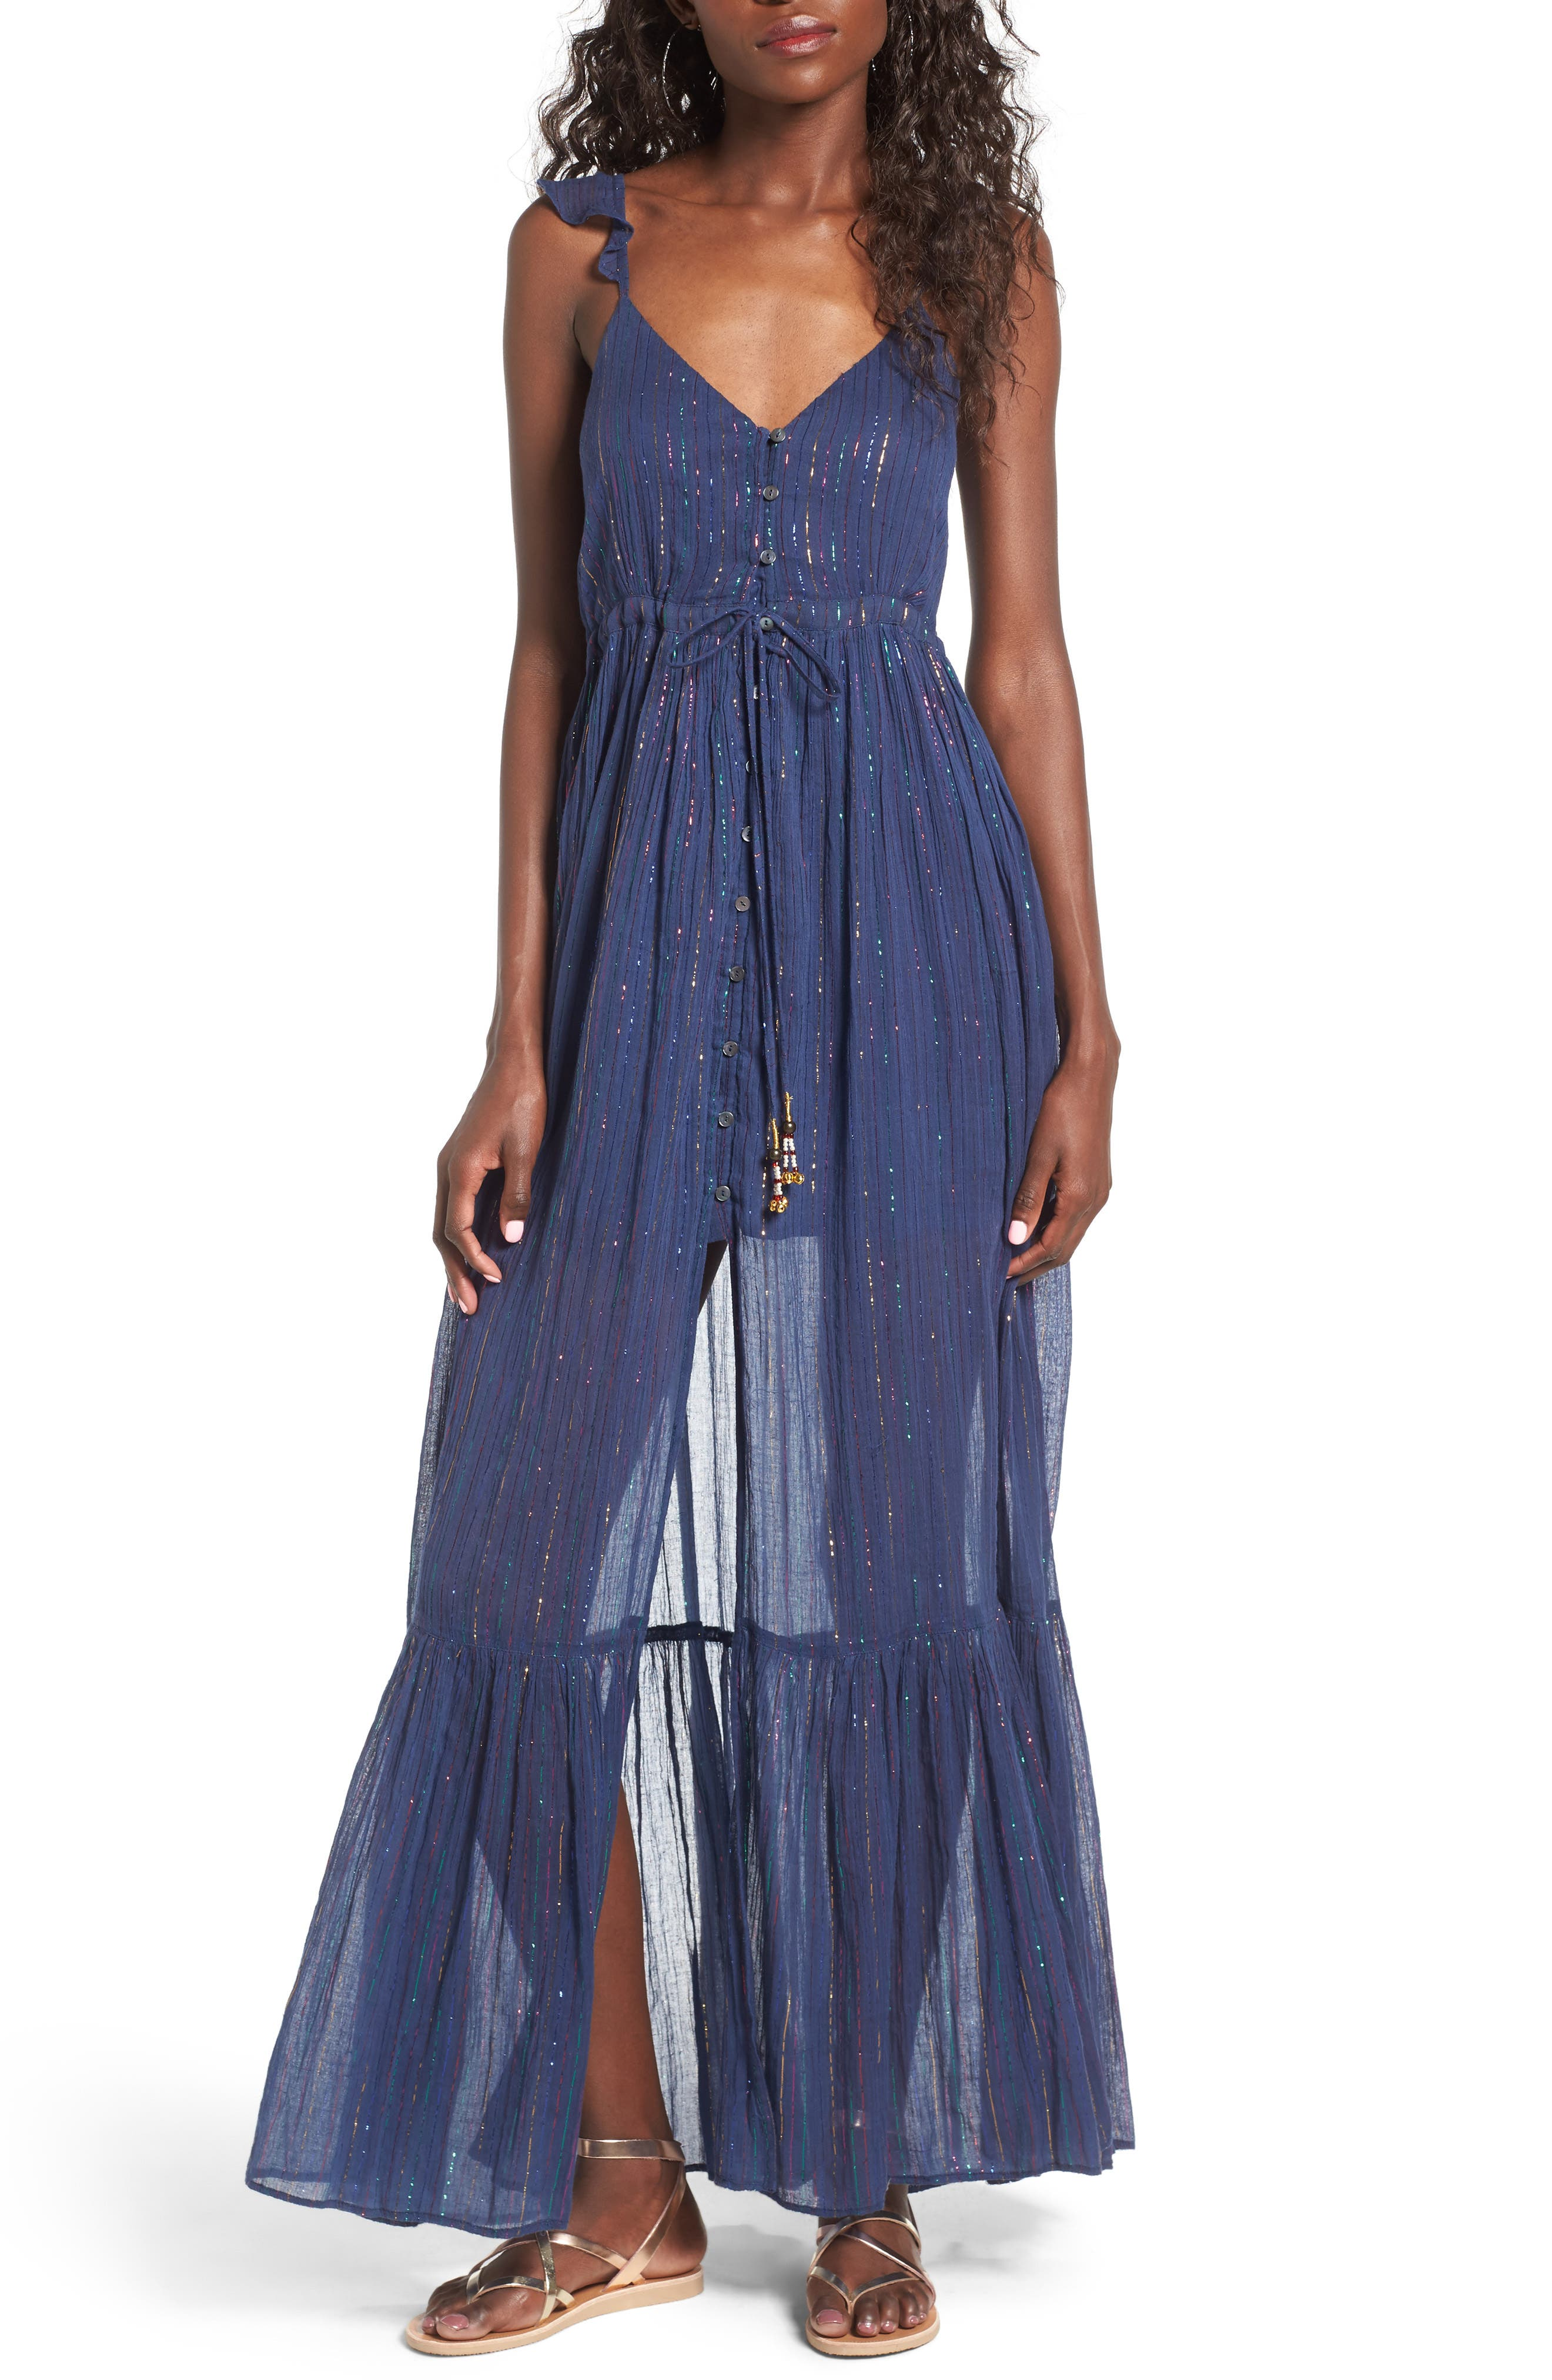 MAJORELLE Brasilia Maxi Dress